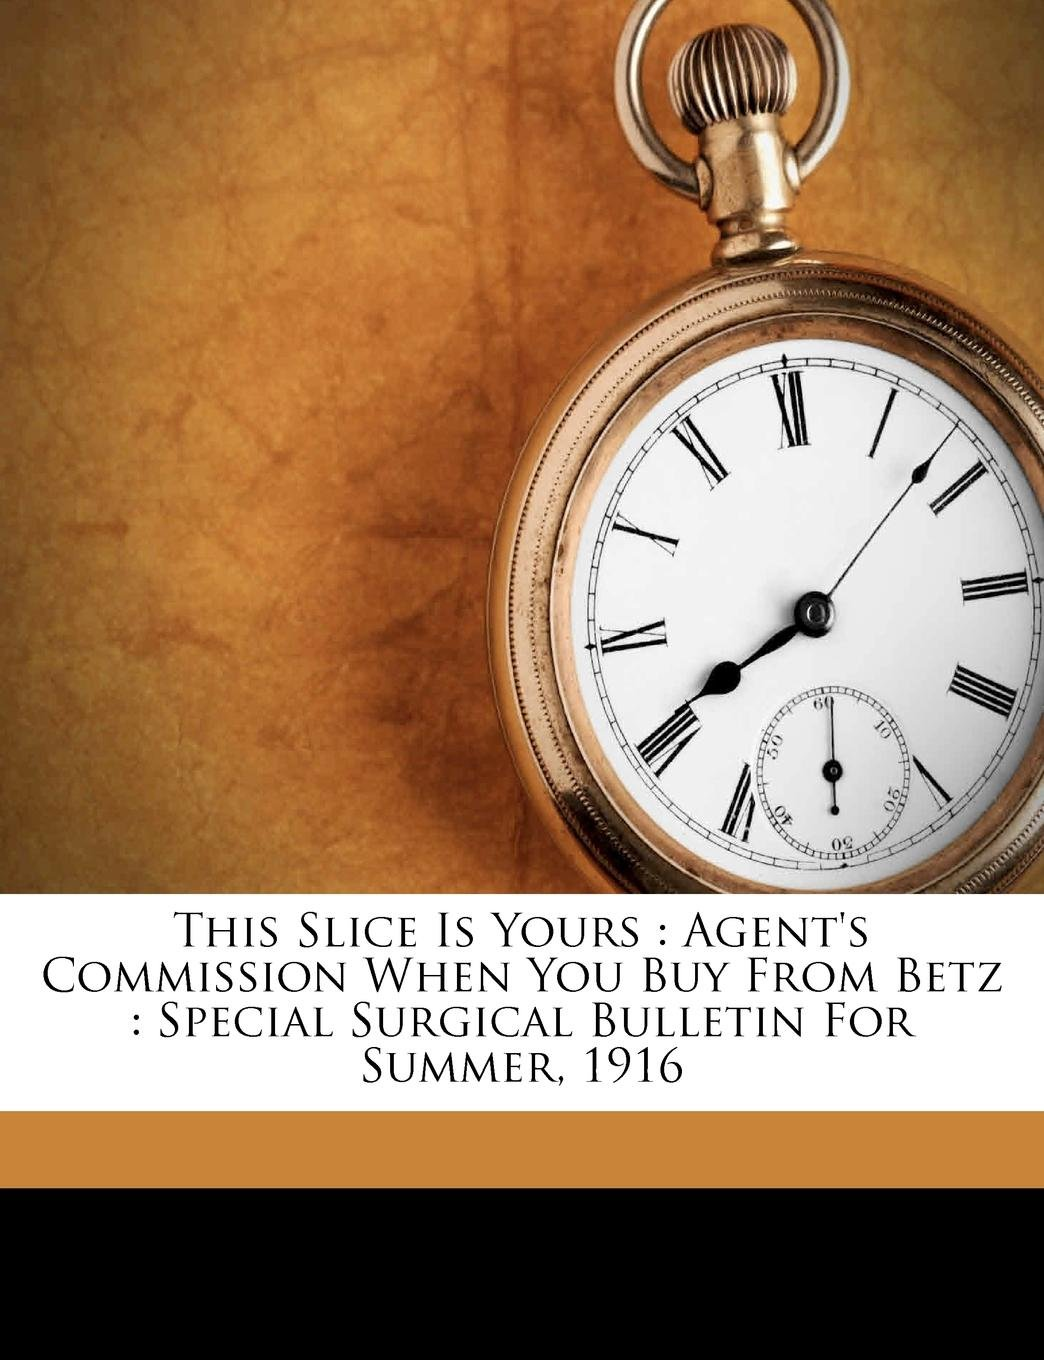 This Slice Is Yours: Agent's Commission When You Buy From Betz : Special Surgical Bulletin For Summer, 1916 by Nabu Press